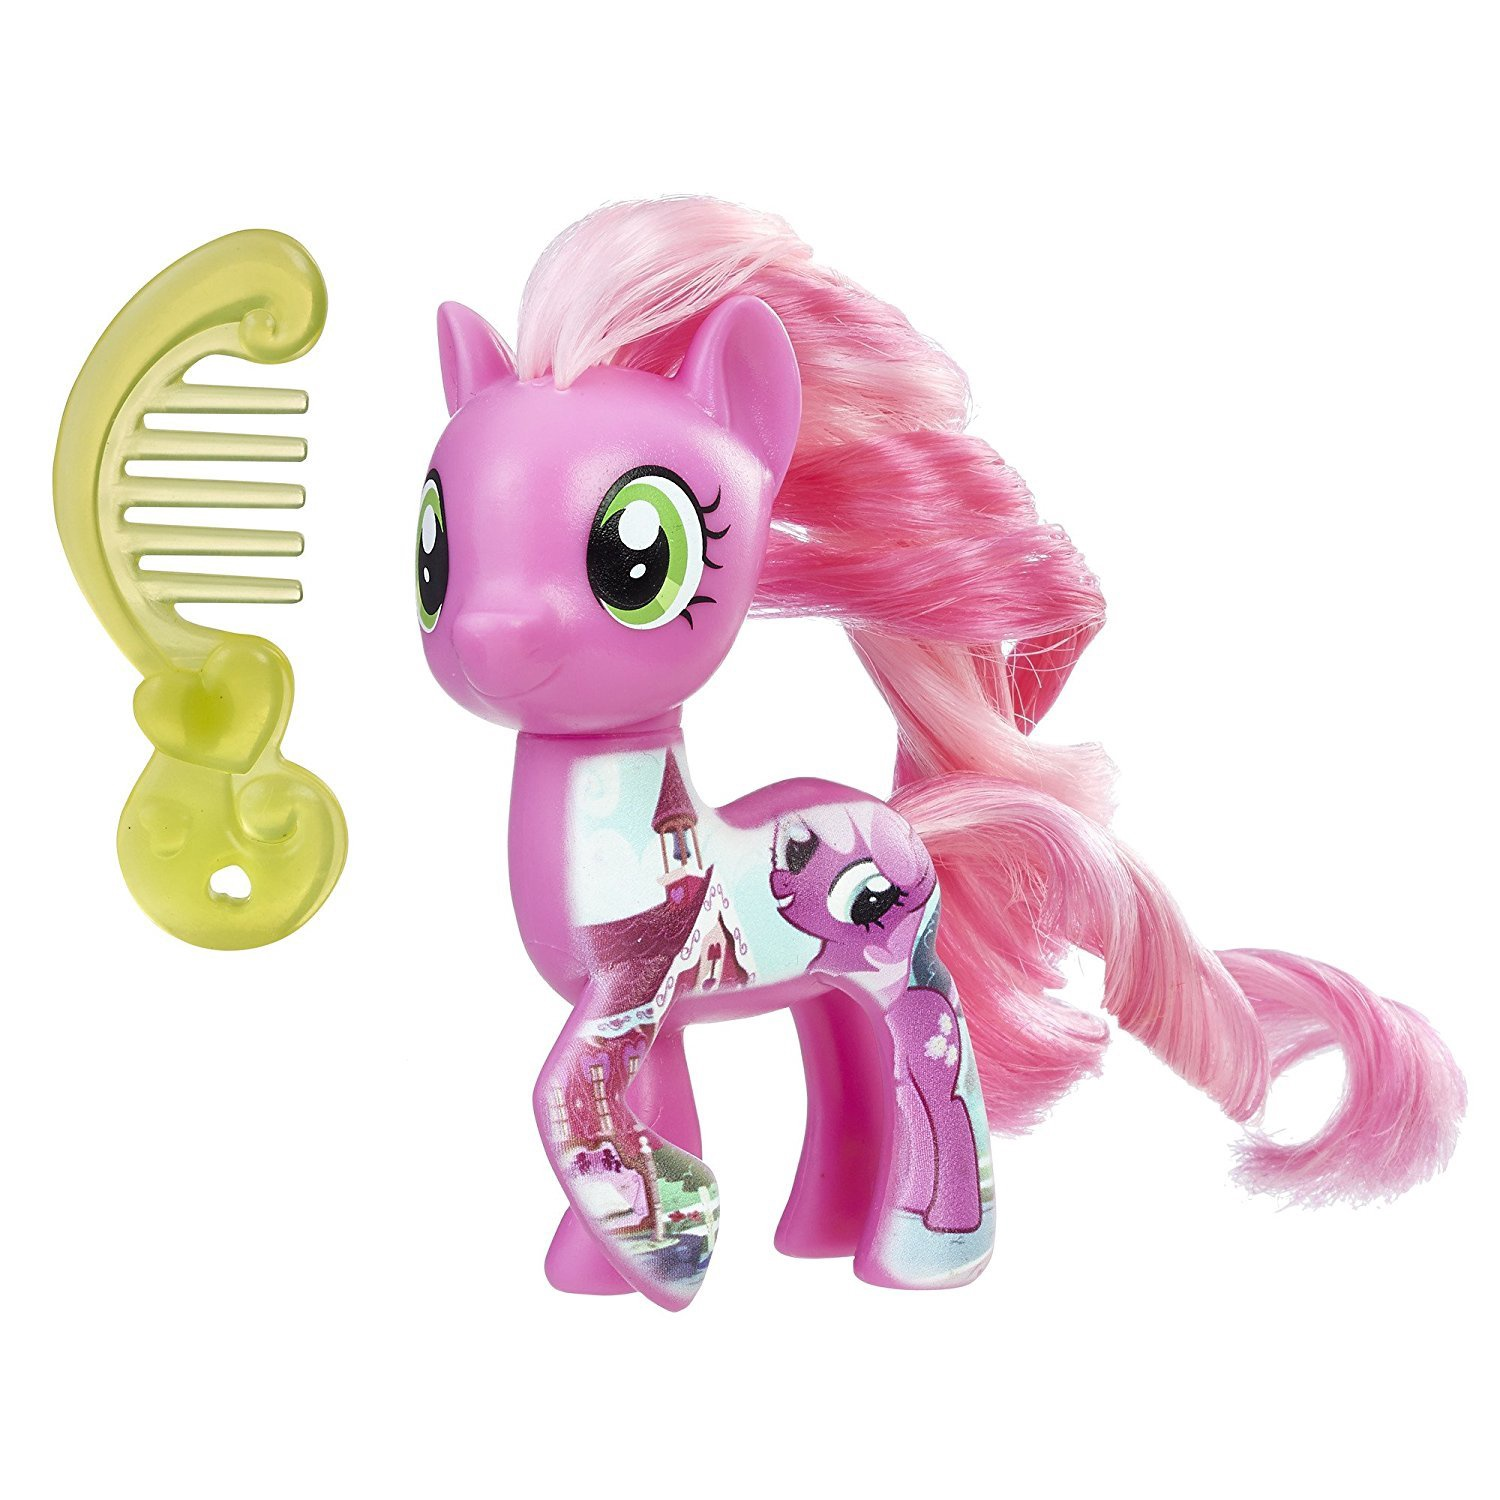 MY LITTLE PONY THE MOVIE ALL ABOUT CHEERILEE